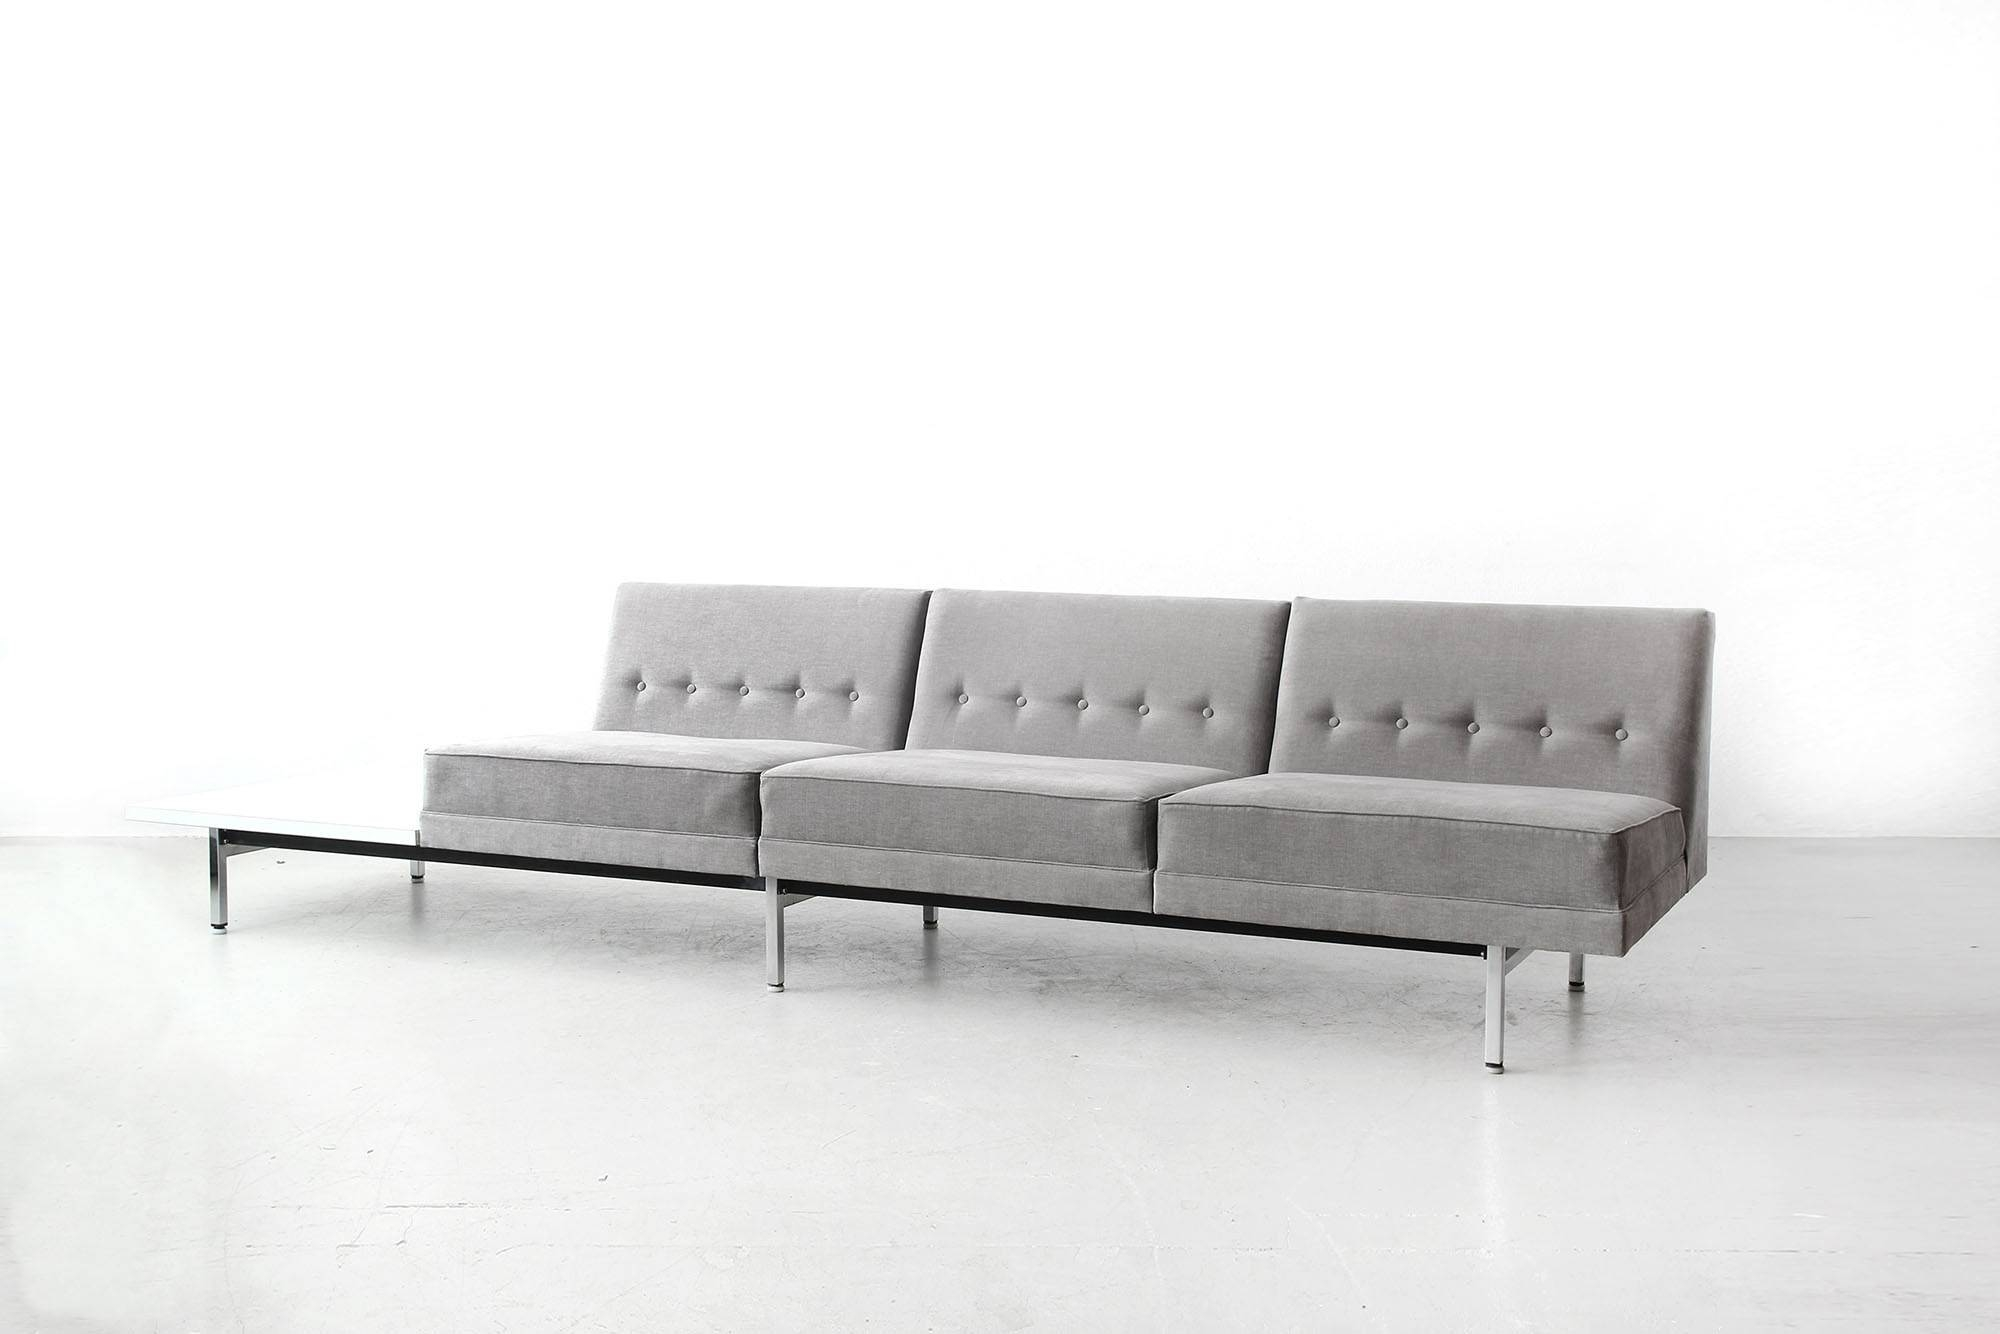 Galerie Bachmann • Modular System Sofageorge Nelson For Herman throughout George Nelson Sofas (Image 4 of 15)